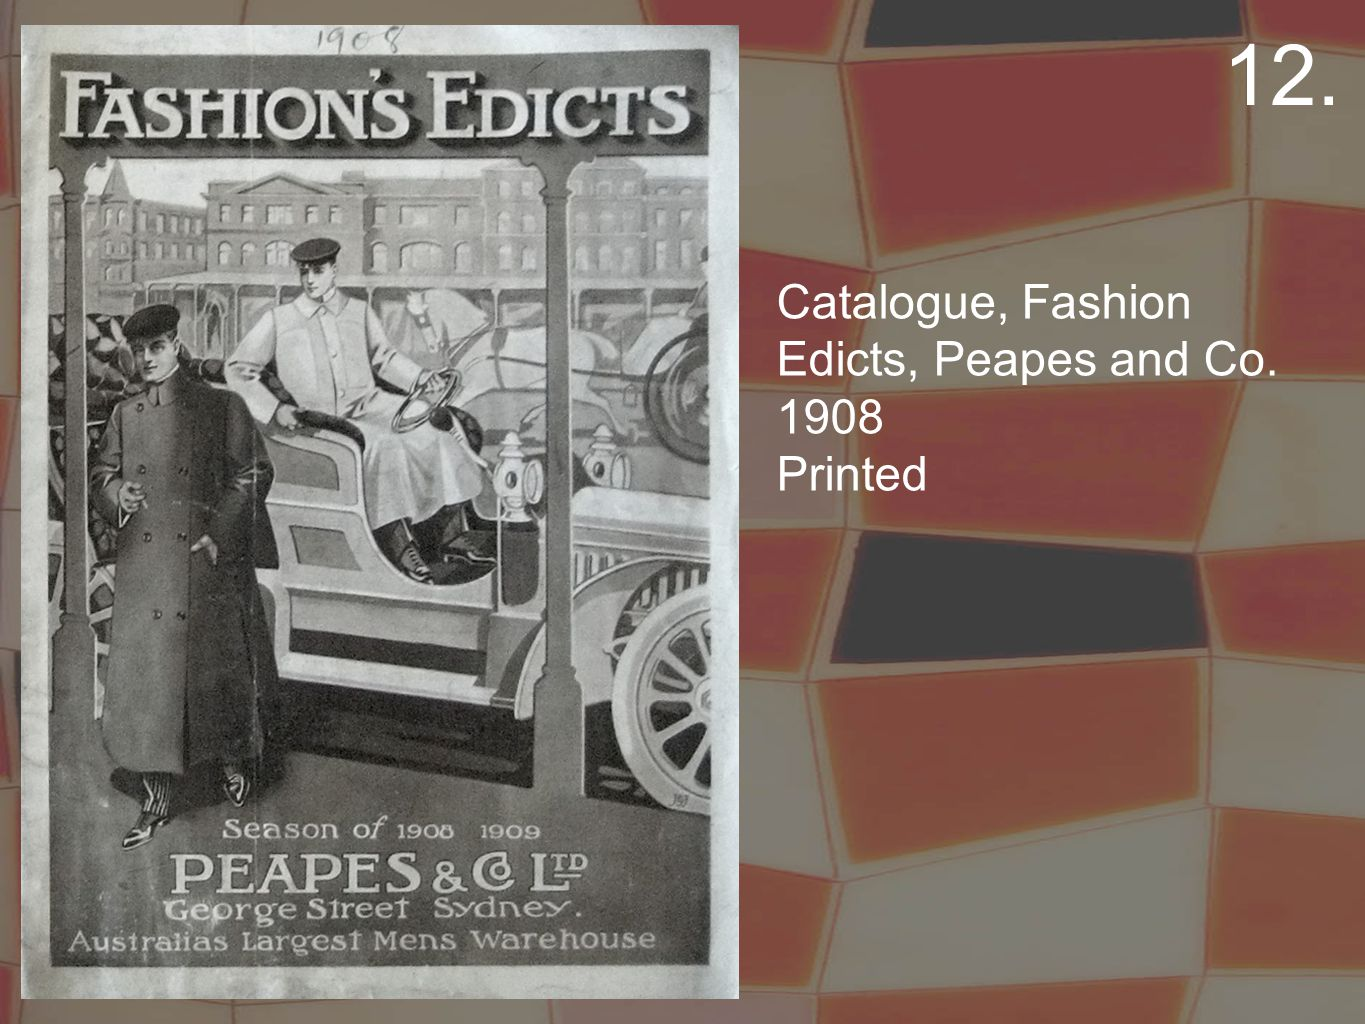 Catalogue, Fashion Edicts, Peapes and Co. 1908 Printed 12.